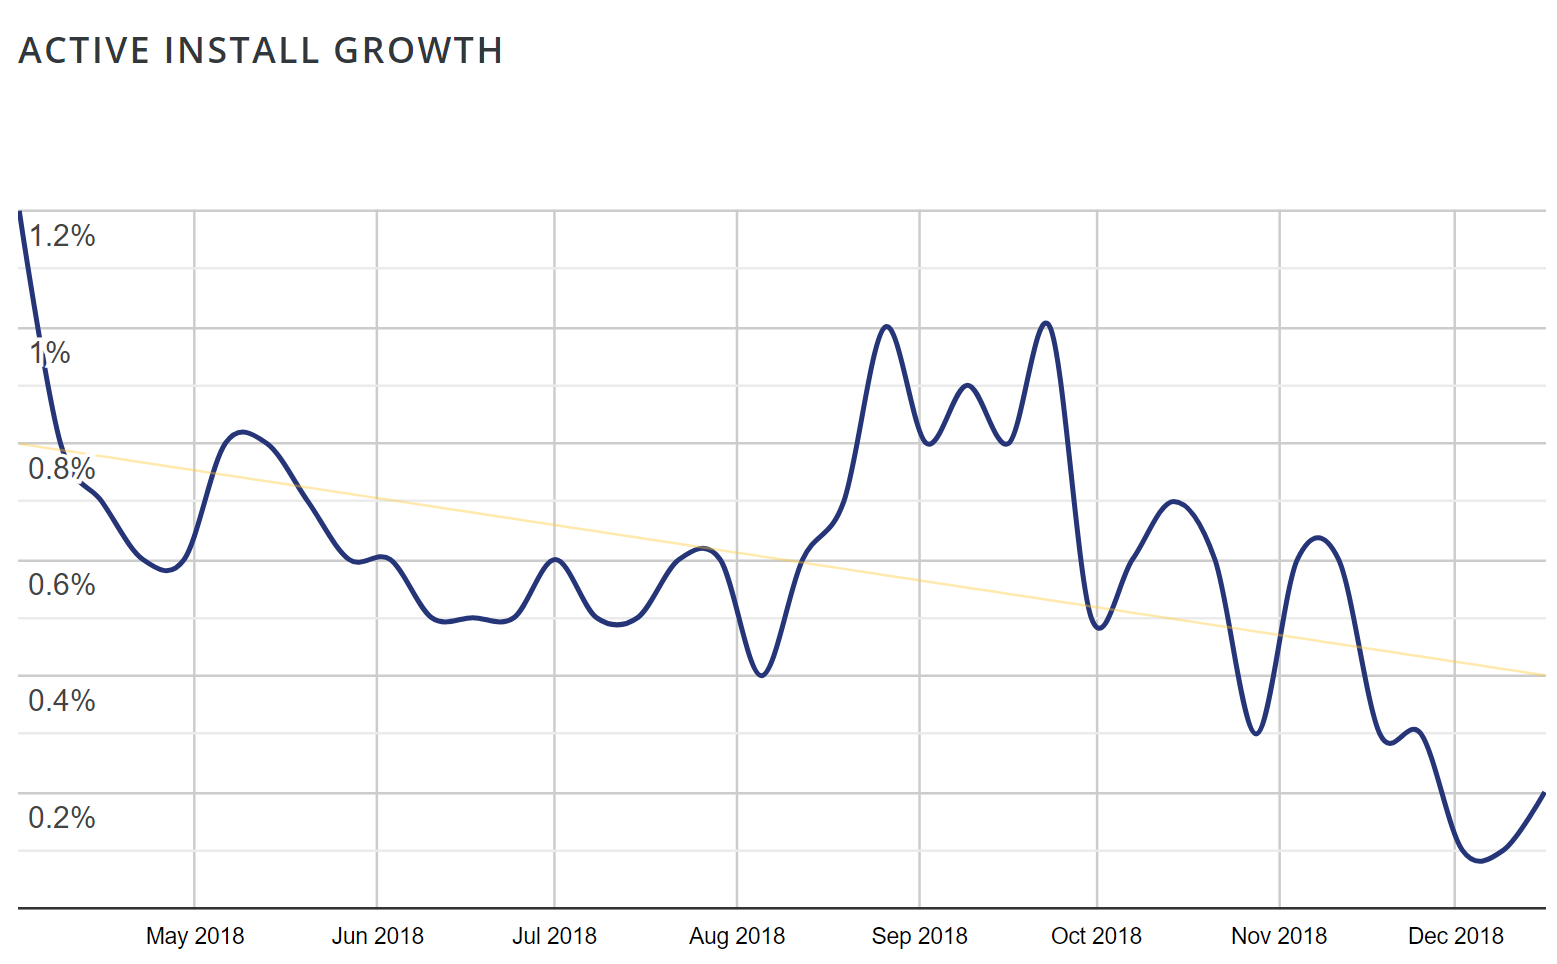 Active Install Growth under each plugin's Advanced View page on the repository